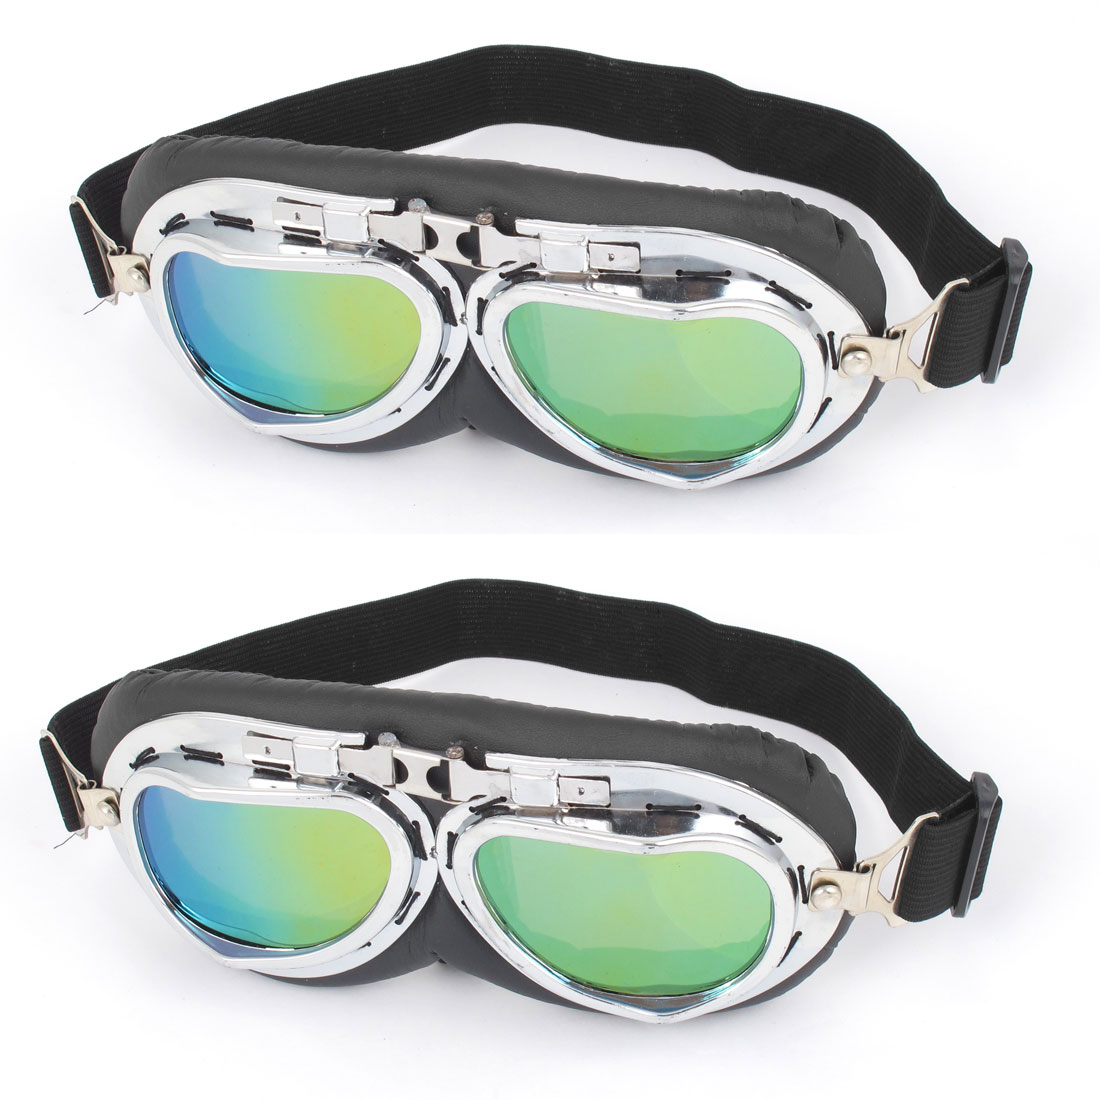 2 Pcs Motorcycle Bicycling Full Frame Adjustable Elastic Strap Green Lens Goggles Glasses Sunglasses